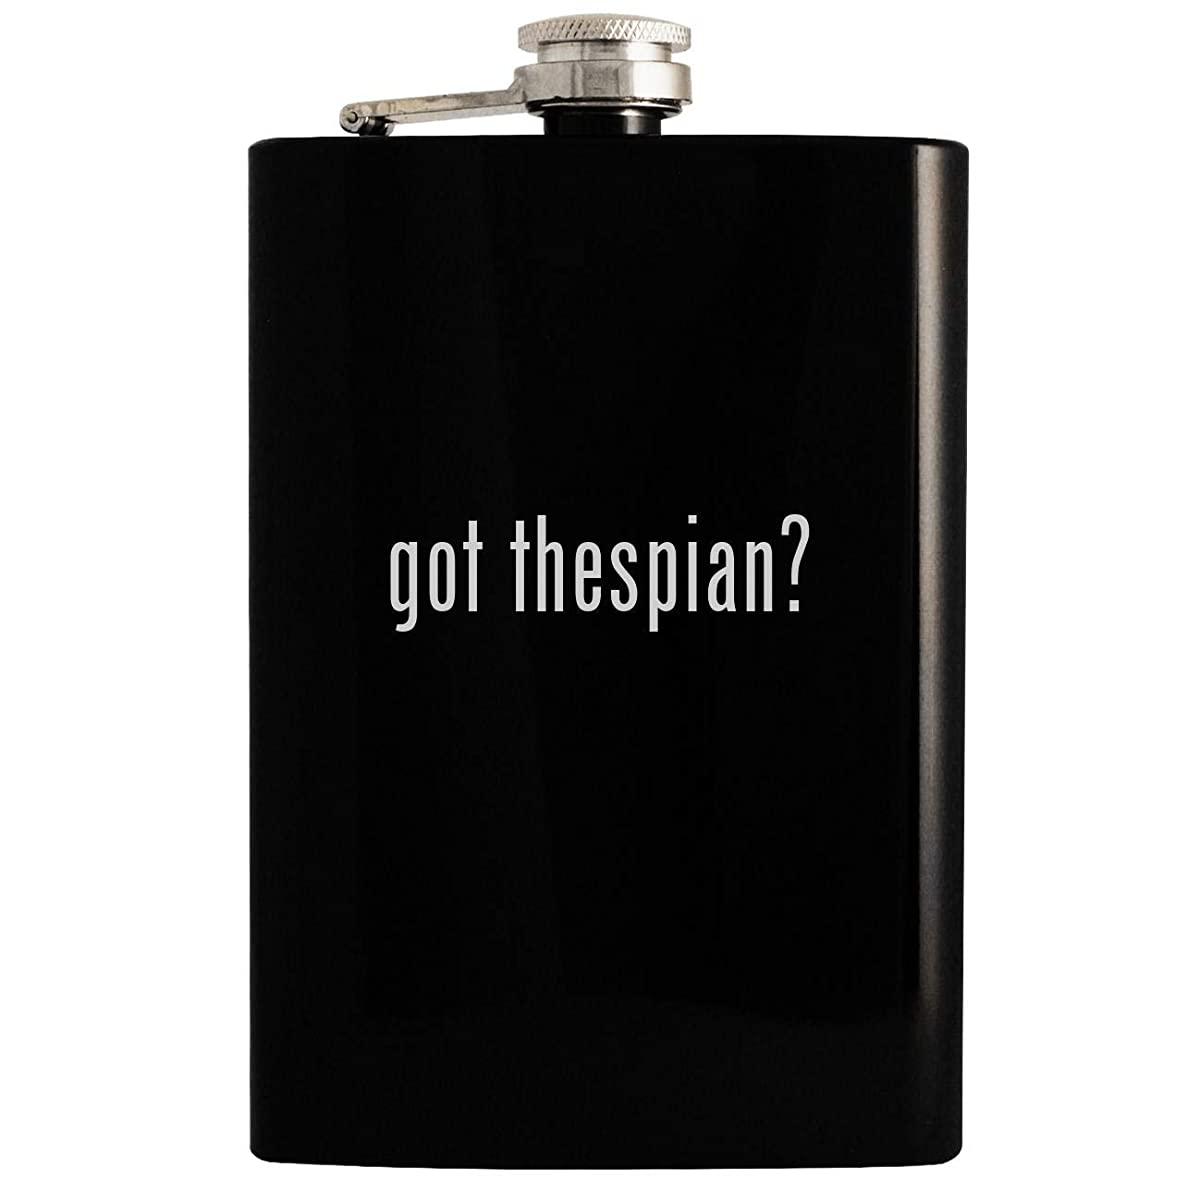 got thespian? - Black 8oz Hip Drinking Alcohol Flask